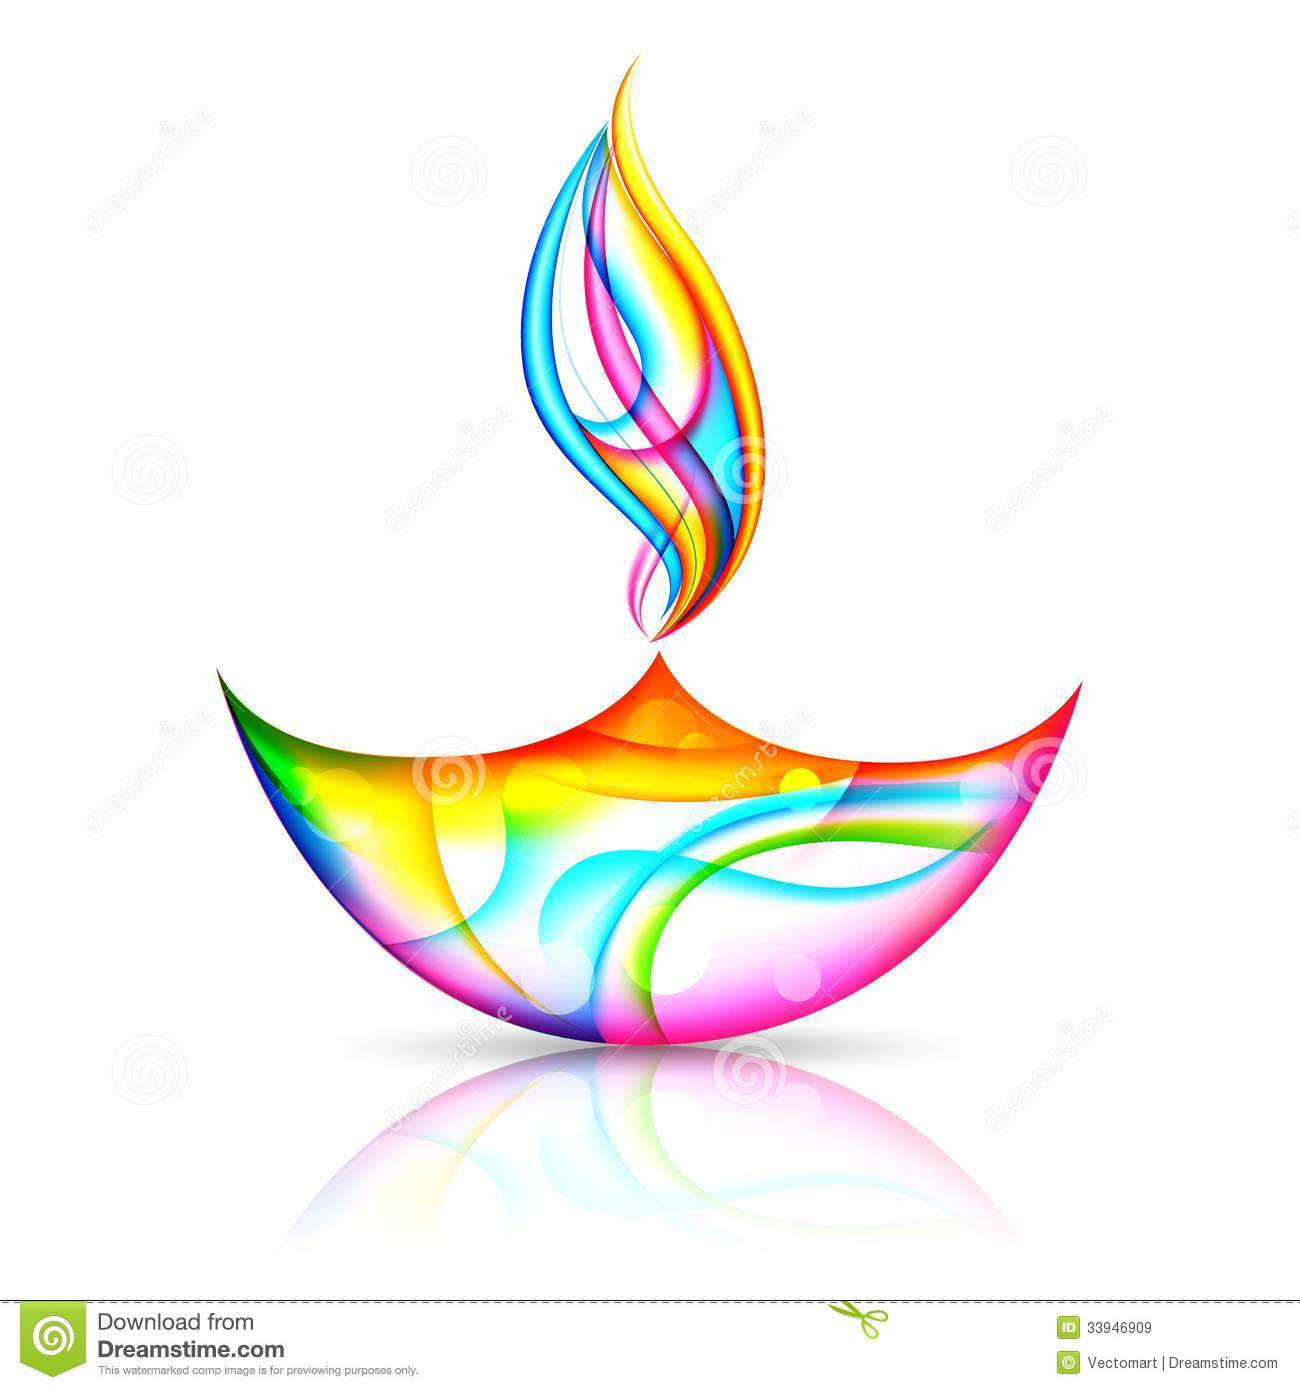 Happy Diwali Holiday Royalty Free Stock Images - Image: 33946909